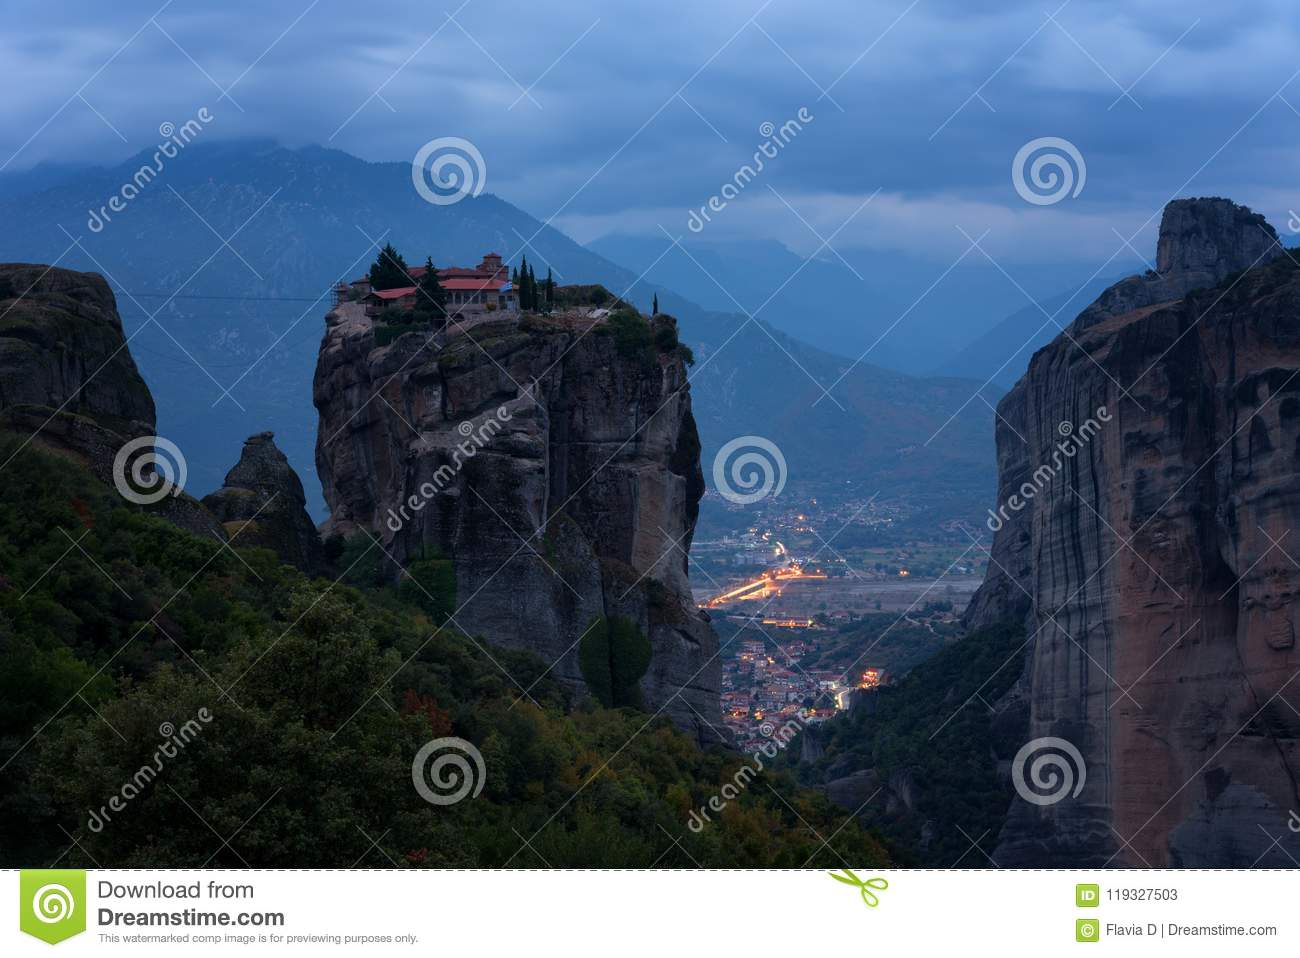 Magnificent nightscape. Monastery Holy Trinity, Meteora, Greece. UNESCO world heritage Site. Epic landscape with temple at t